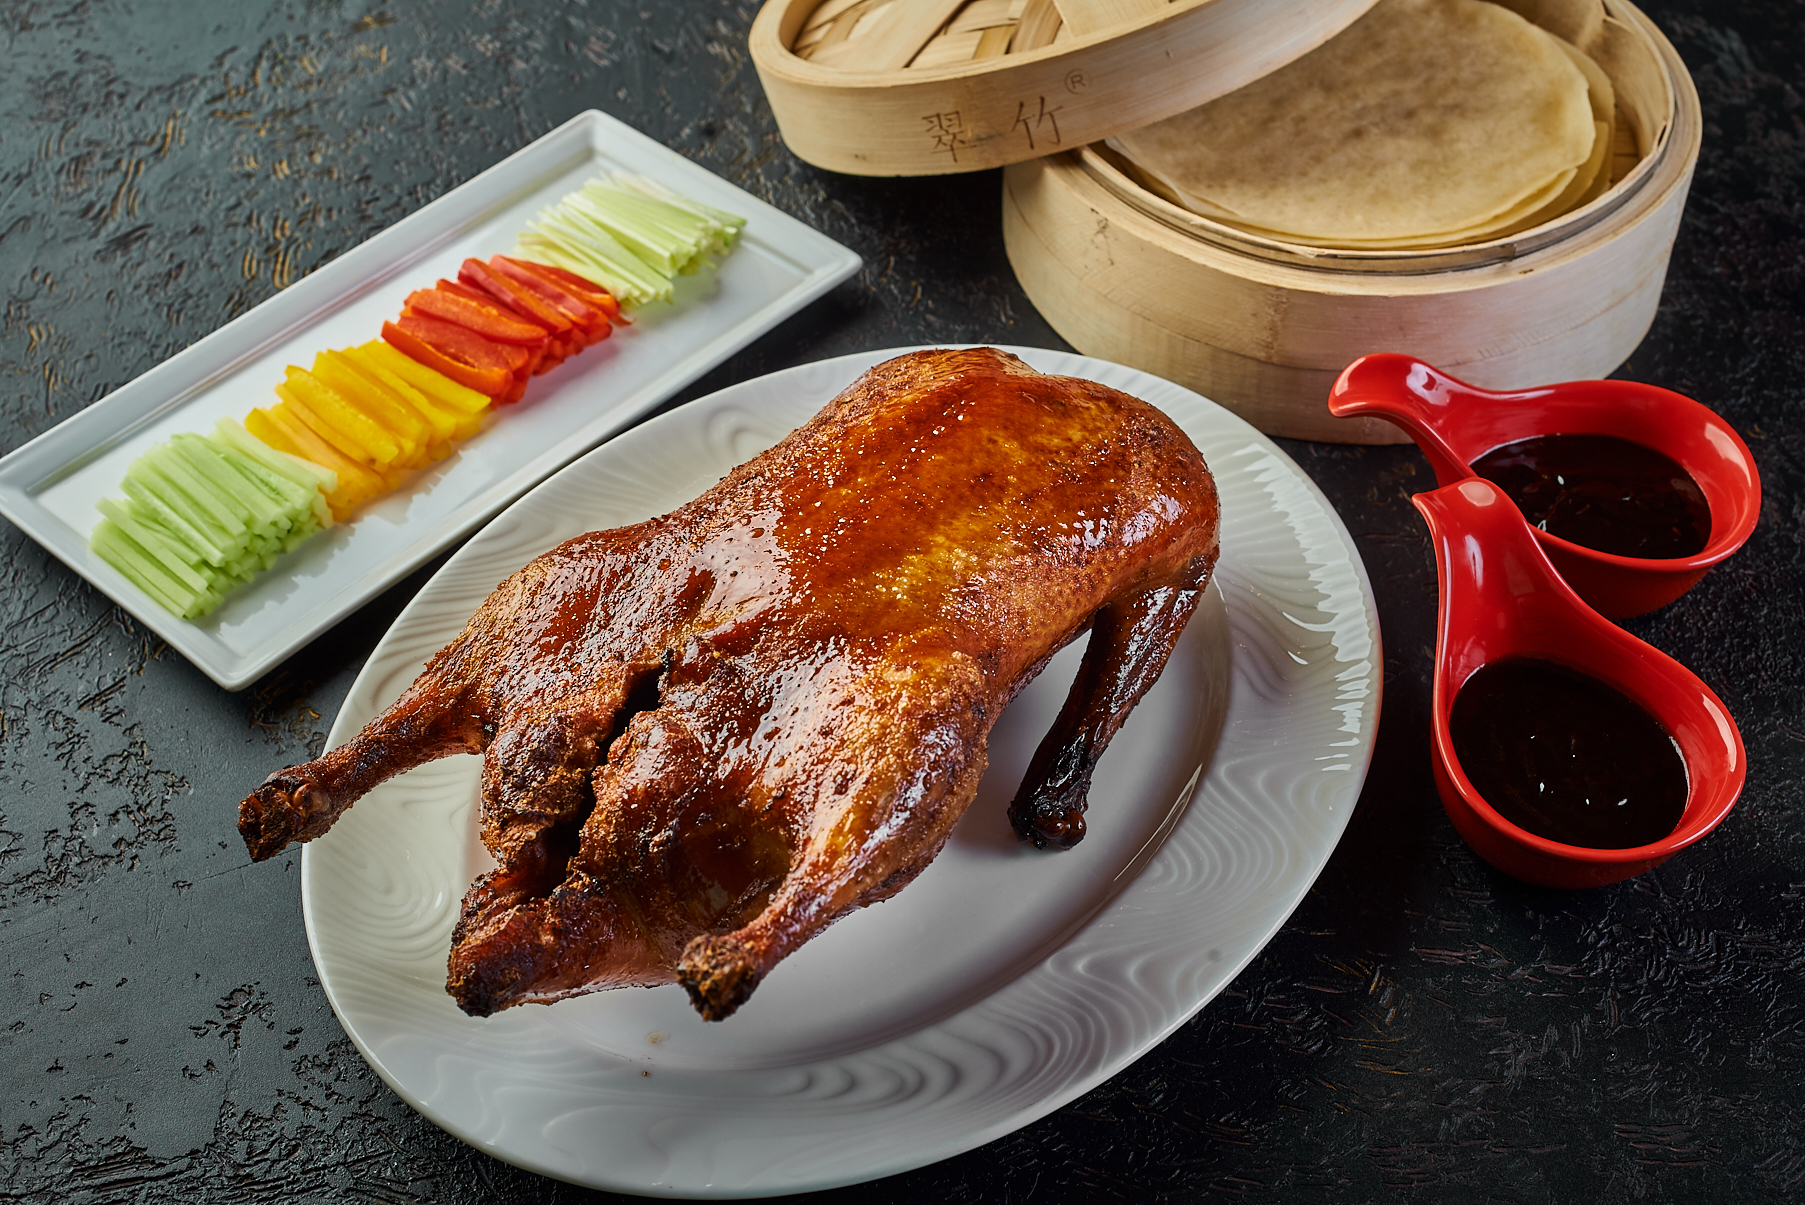 Peking duck with pancakes and vegetables 4500₽